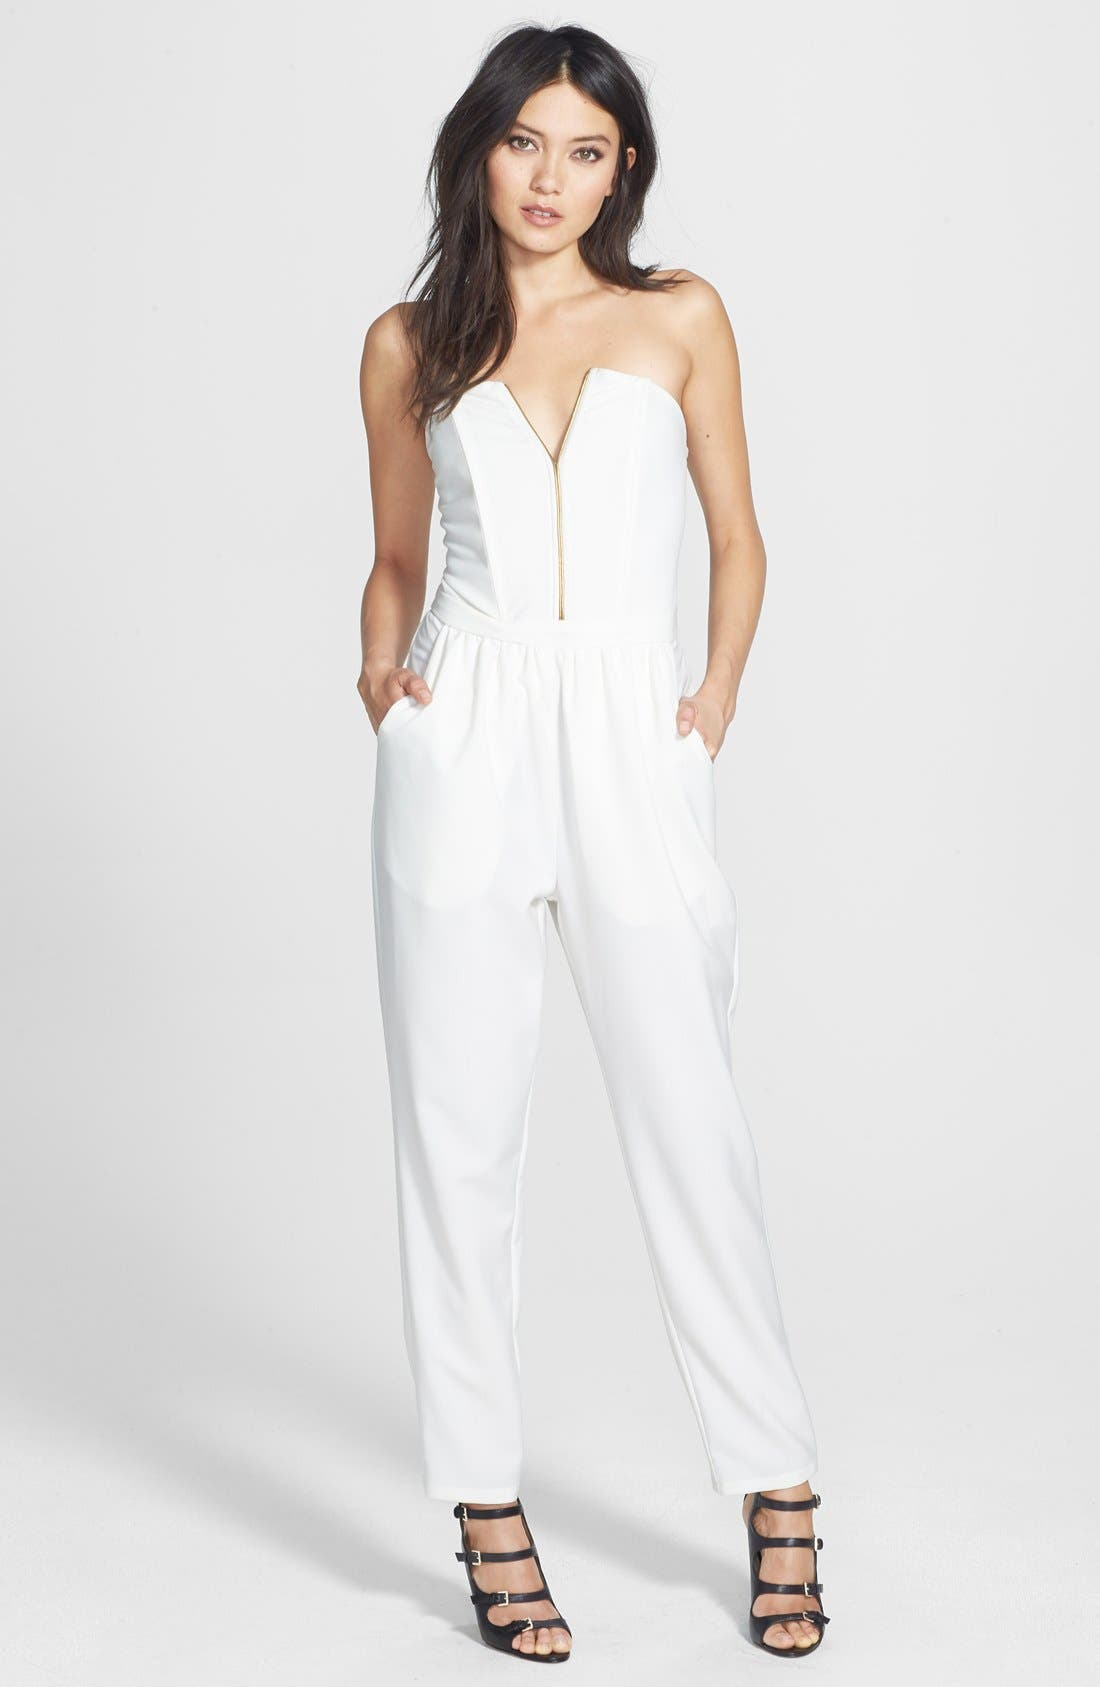 Main Image - Rules of Etiquette 'Bianca' Strapless Jumpsuit